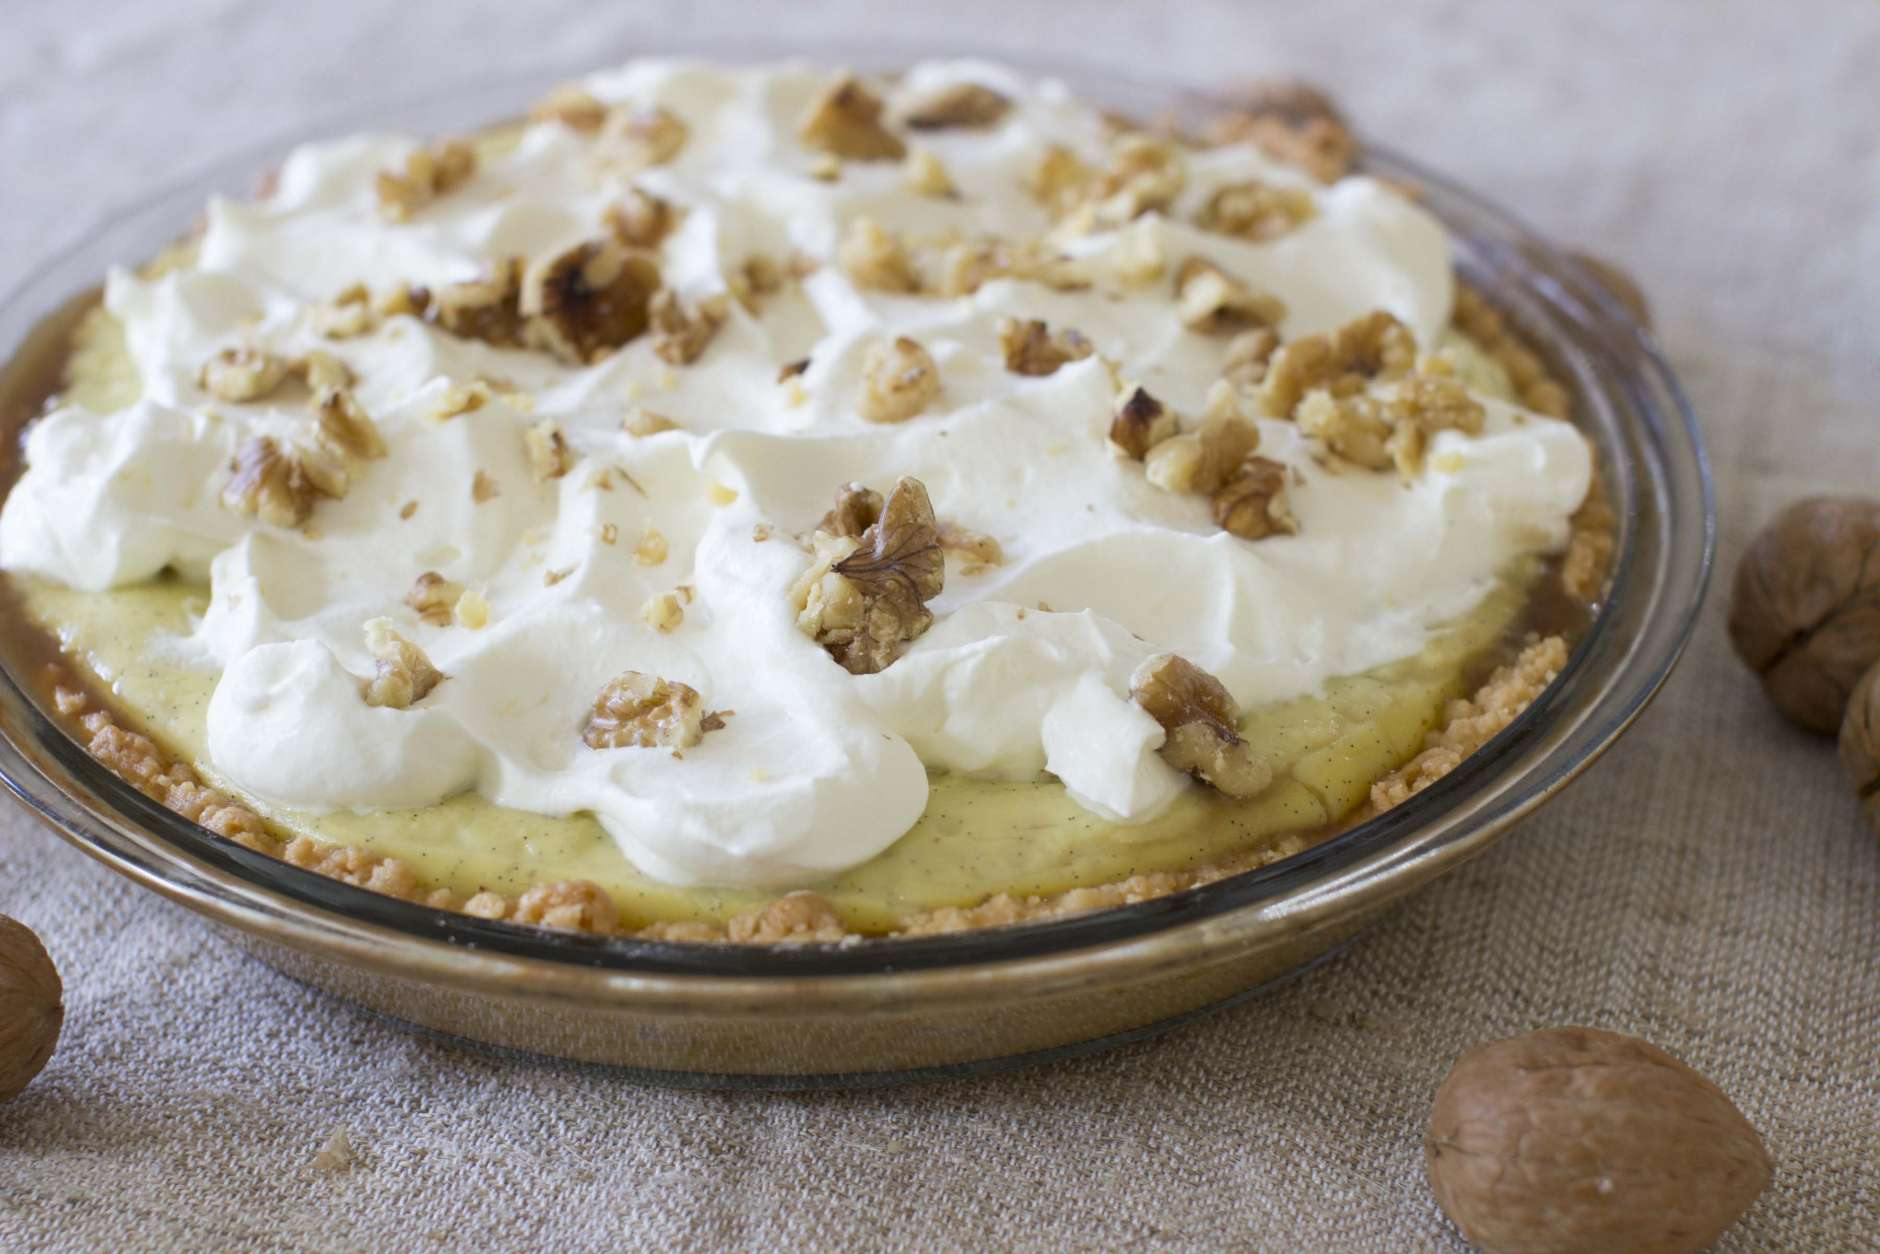 This Oct. 27, 2014 photo shows penuche cream pie in Concord, N.H. It is important to assemble this pie only just before serving; the penuche will soften once the custard layer is added. (AP Photo/Matthew Mead)